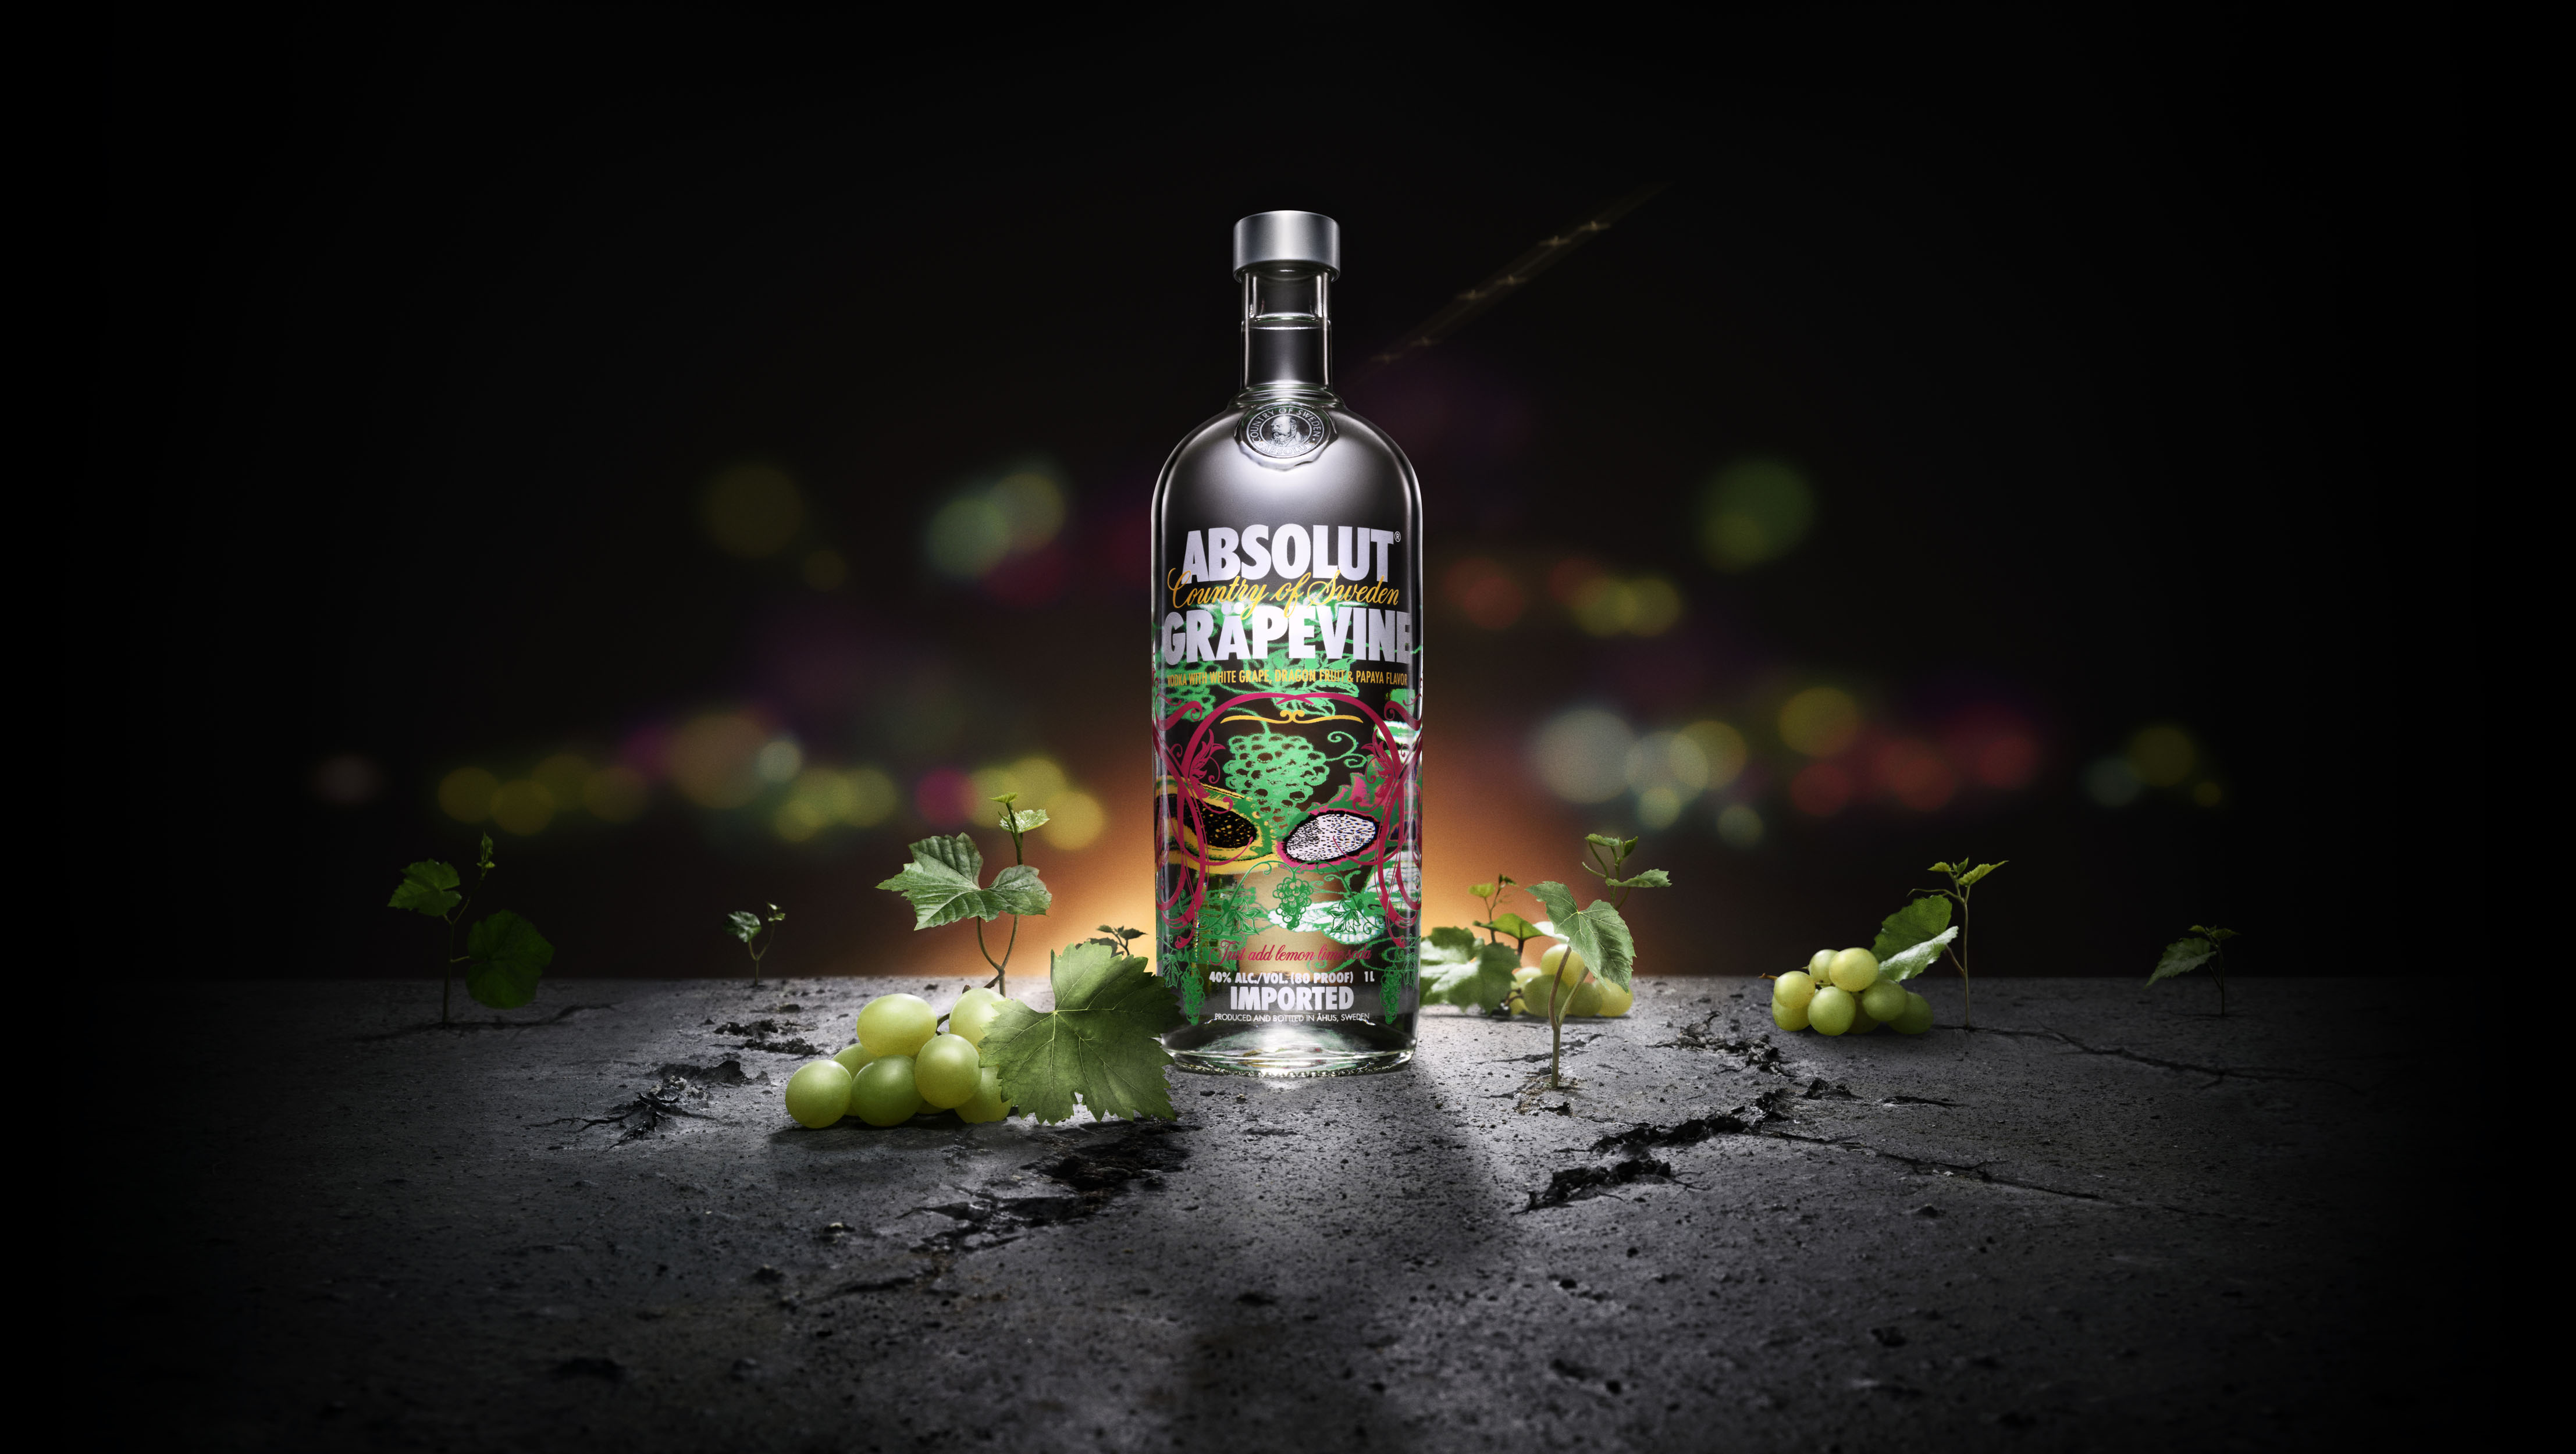 jensmortensen-absolut-vodka-2dab23de